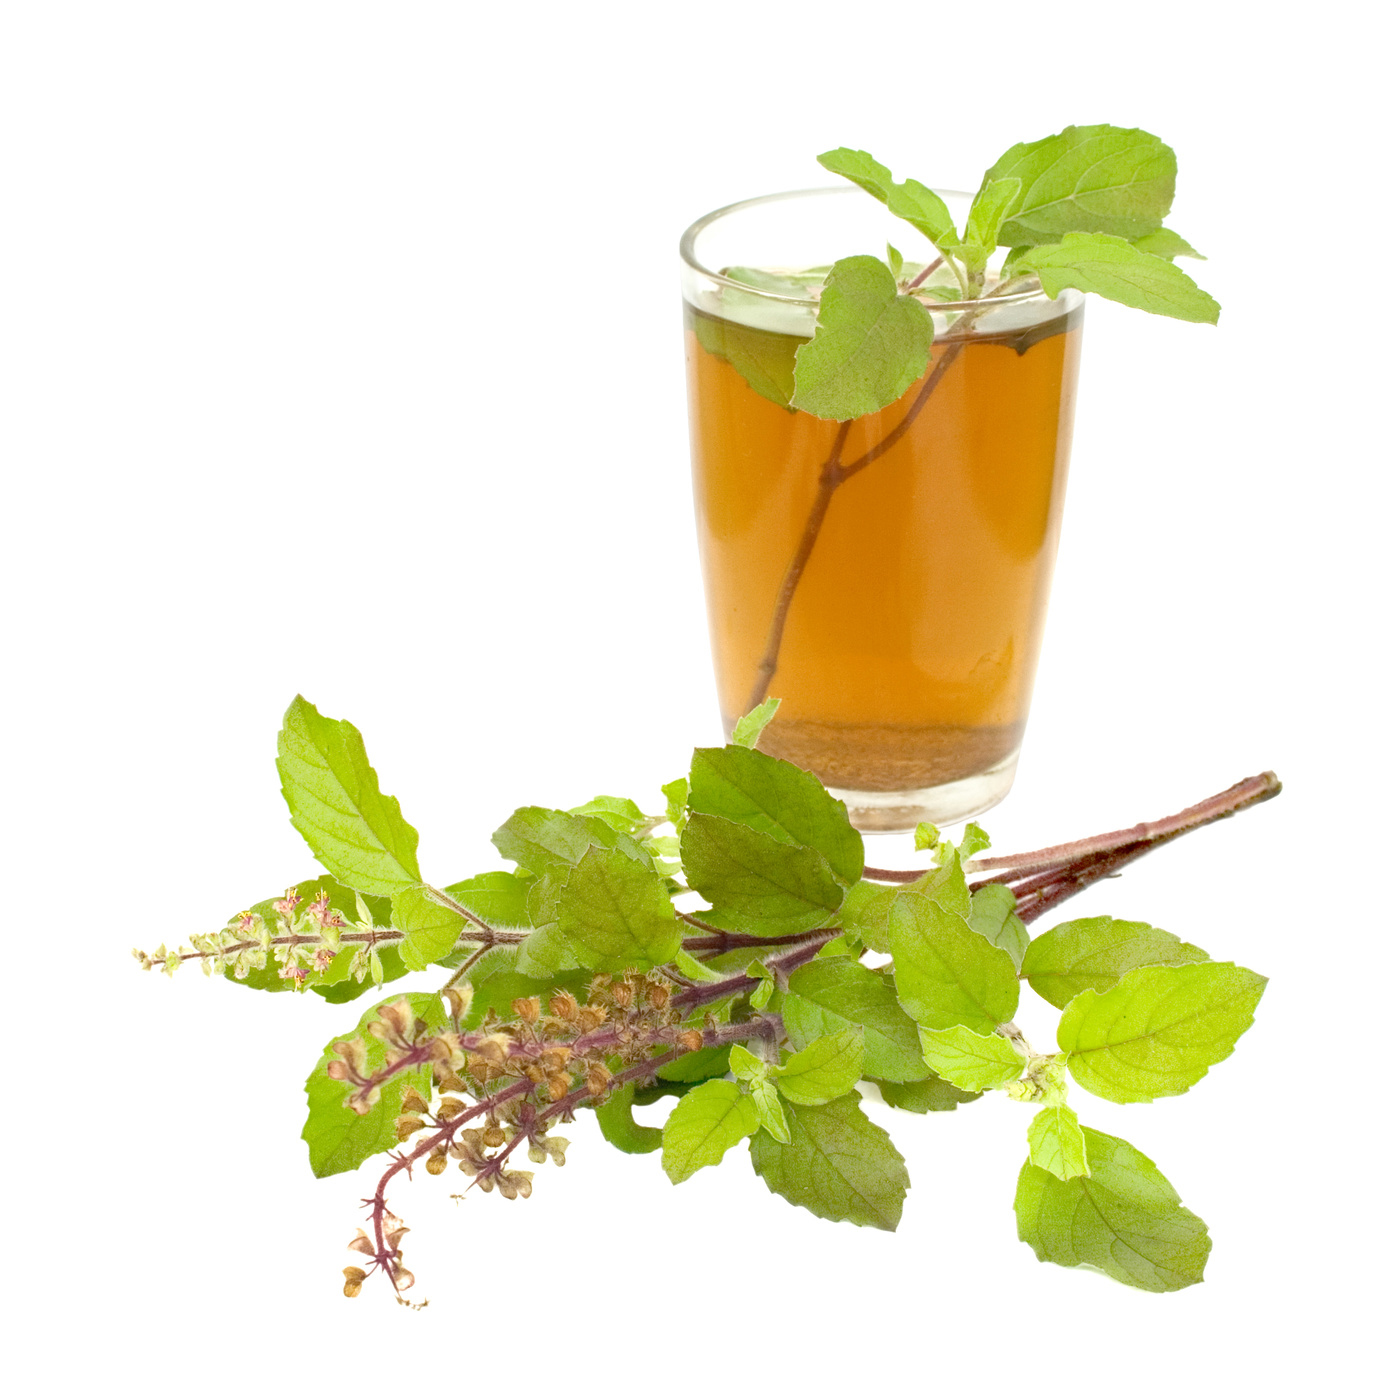 6 Amazing Health Benefits Of Tulsi Plant